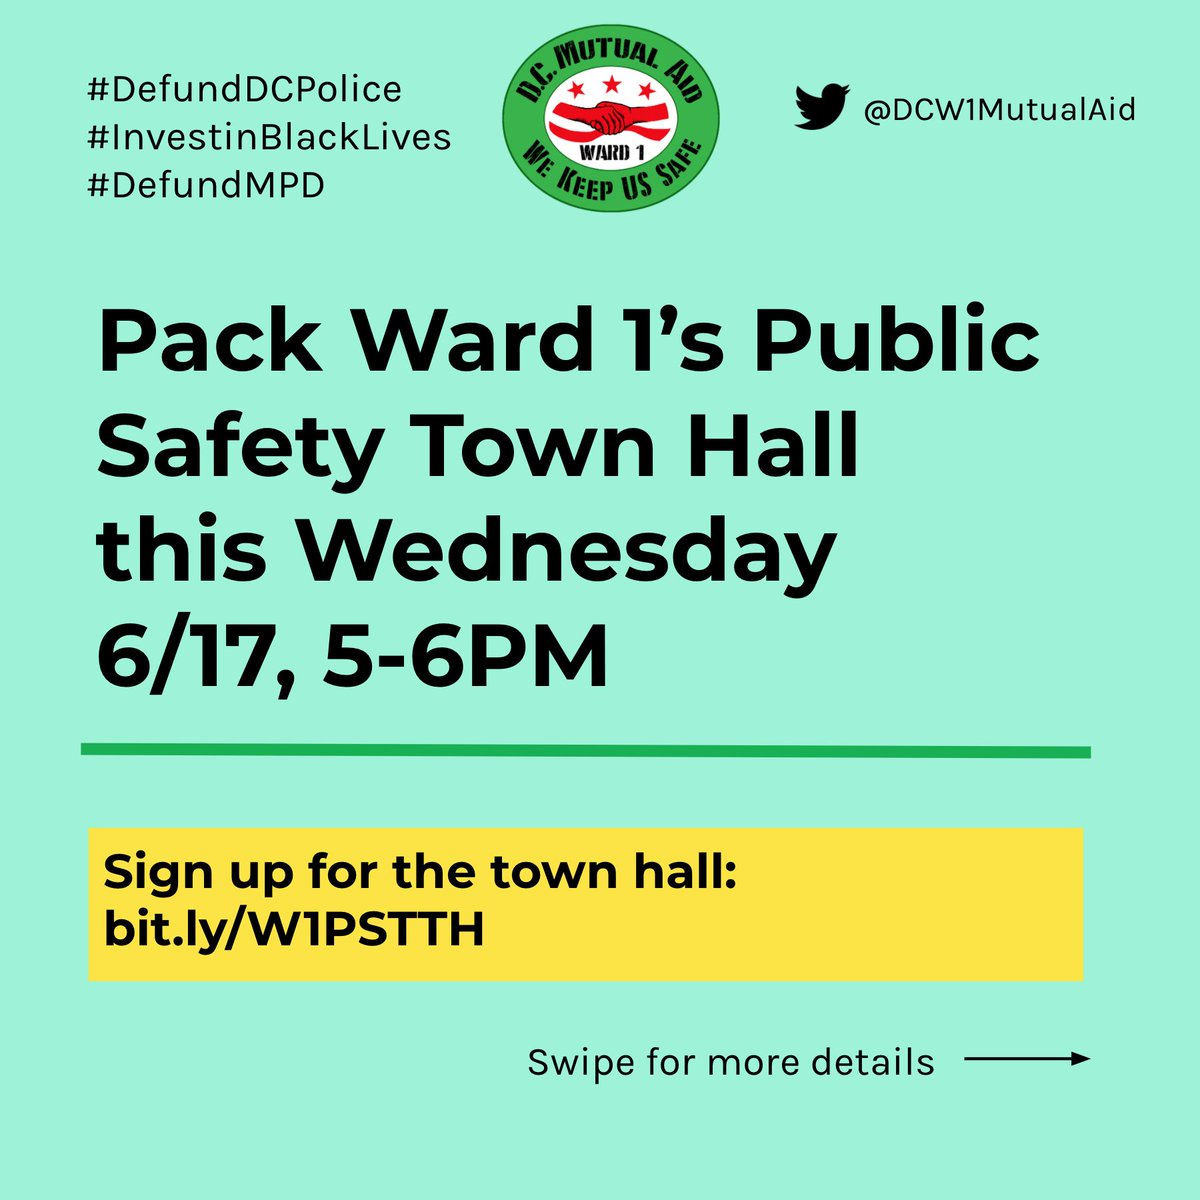 If you're in Ward 1 and want to #DefundDCPolice, register and pack this Public Safety Town Hall!!  💥TOMORROW FROM 5-6 PM💥 https://t.co/8RsyIqlqll  Tell @BrianneKNadeau that her constituents demand DC Council: - Divest from MPD - Invest in our Community - Drop the Charges https://t.co/hHvf1bxaM5